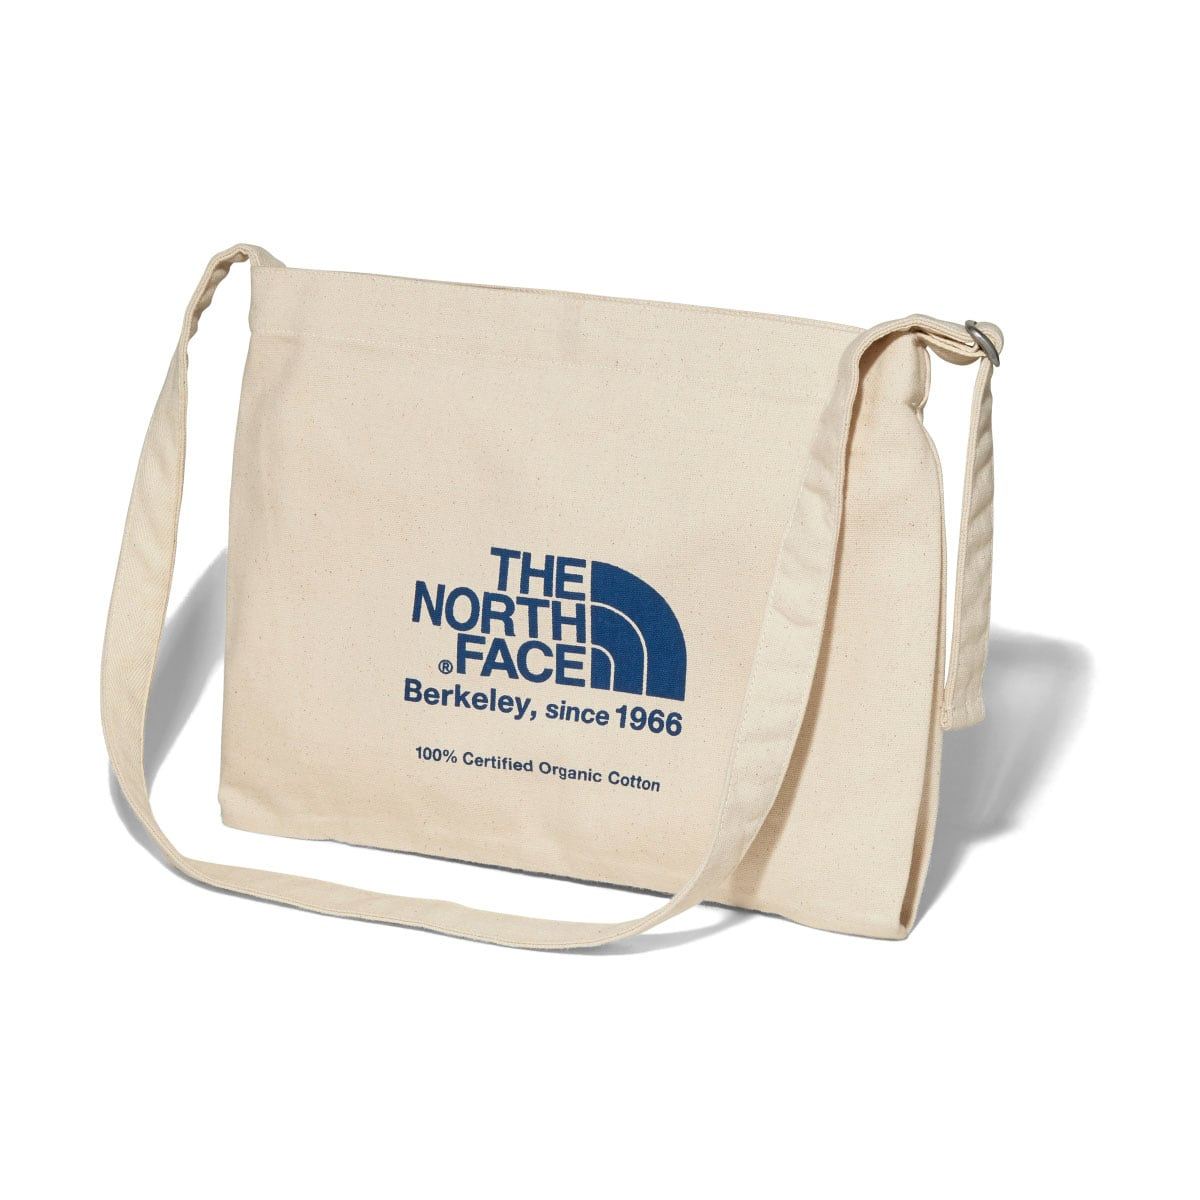 THE NORTH FACE MUSETTE BAG ナチュラル x ソーダライトブルー 19SS-I_photo_large